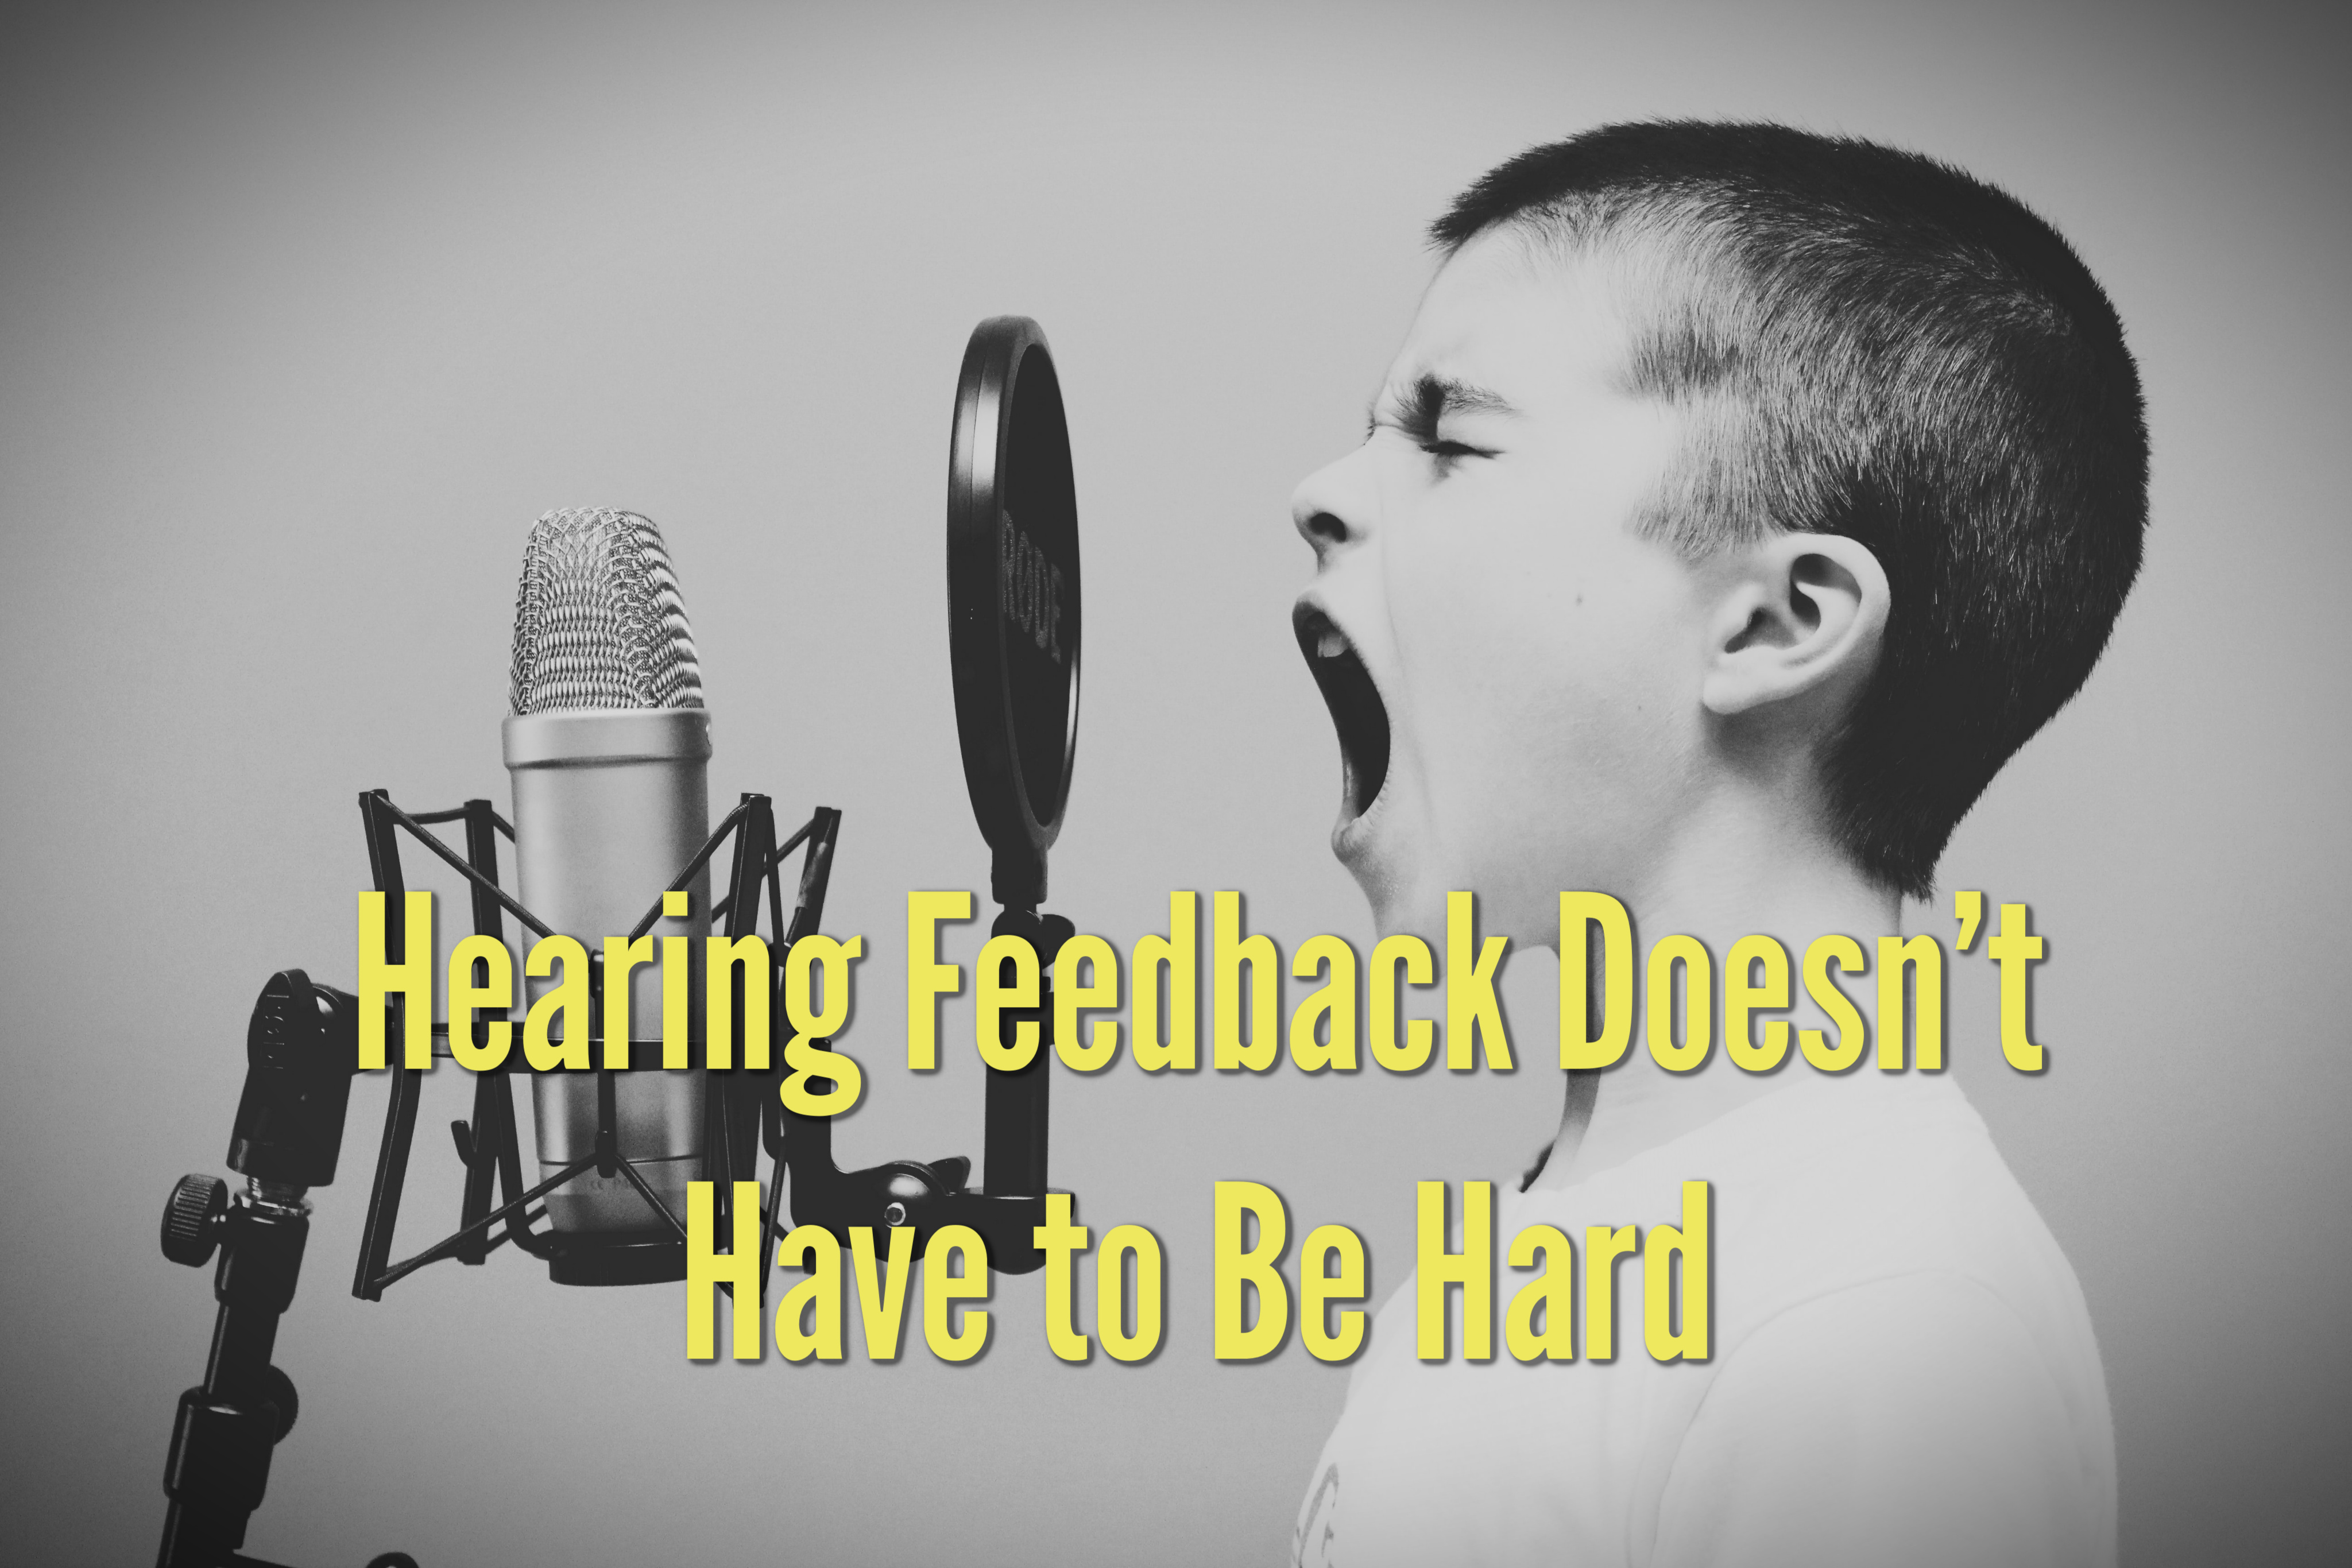 Hearing Feedback Doesn't Have to Be Hard